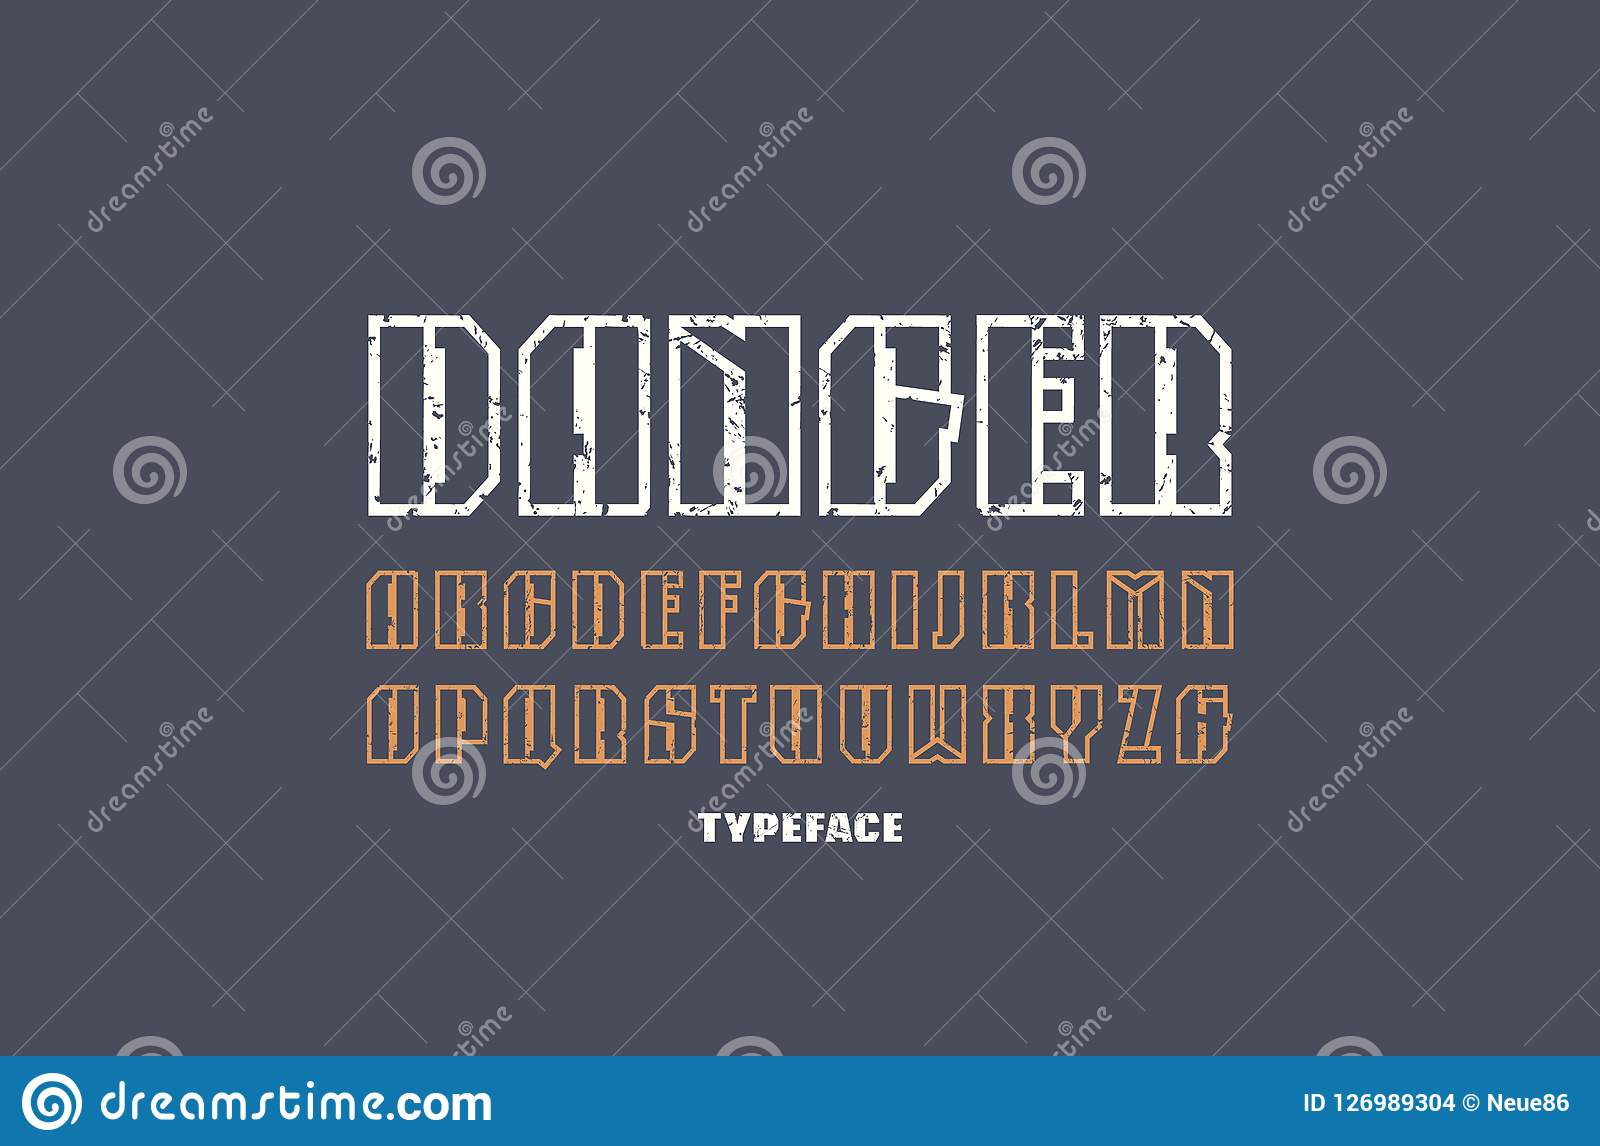 Narrow hollow sans serif font in military style letters with vintage texture for logo and emblem design color print on dark background